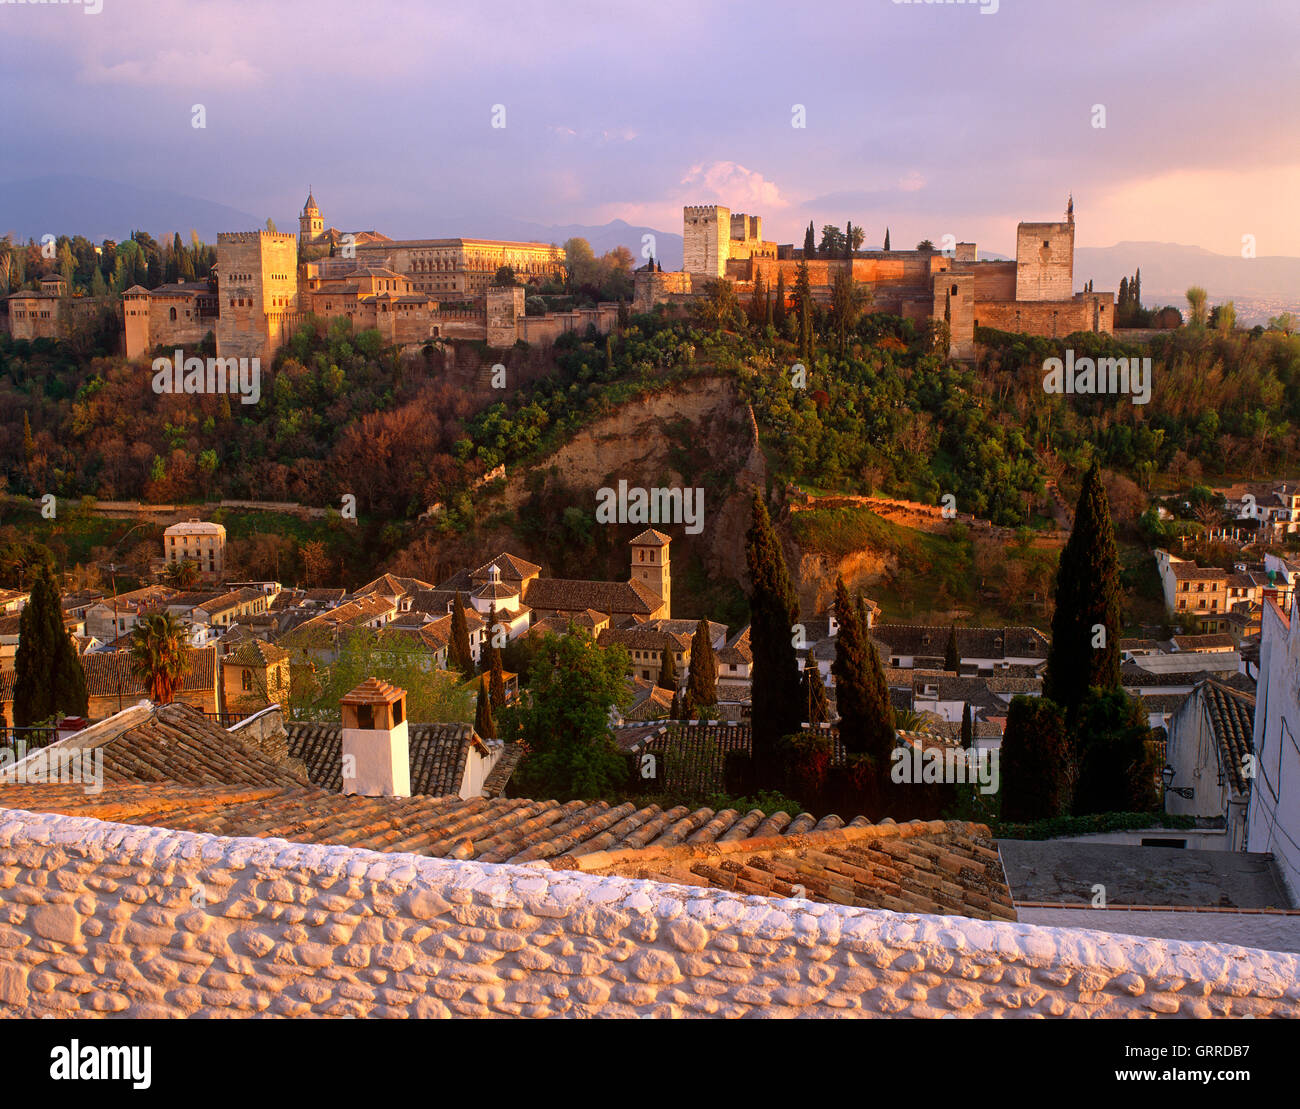 Alhambra Palace at sunset, Granada, Andalucia, Spain Stock Photo